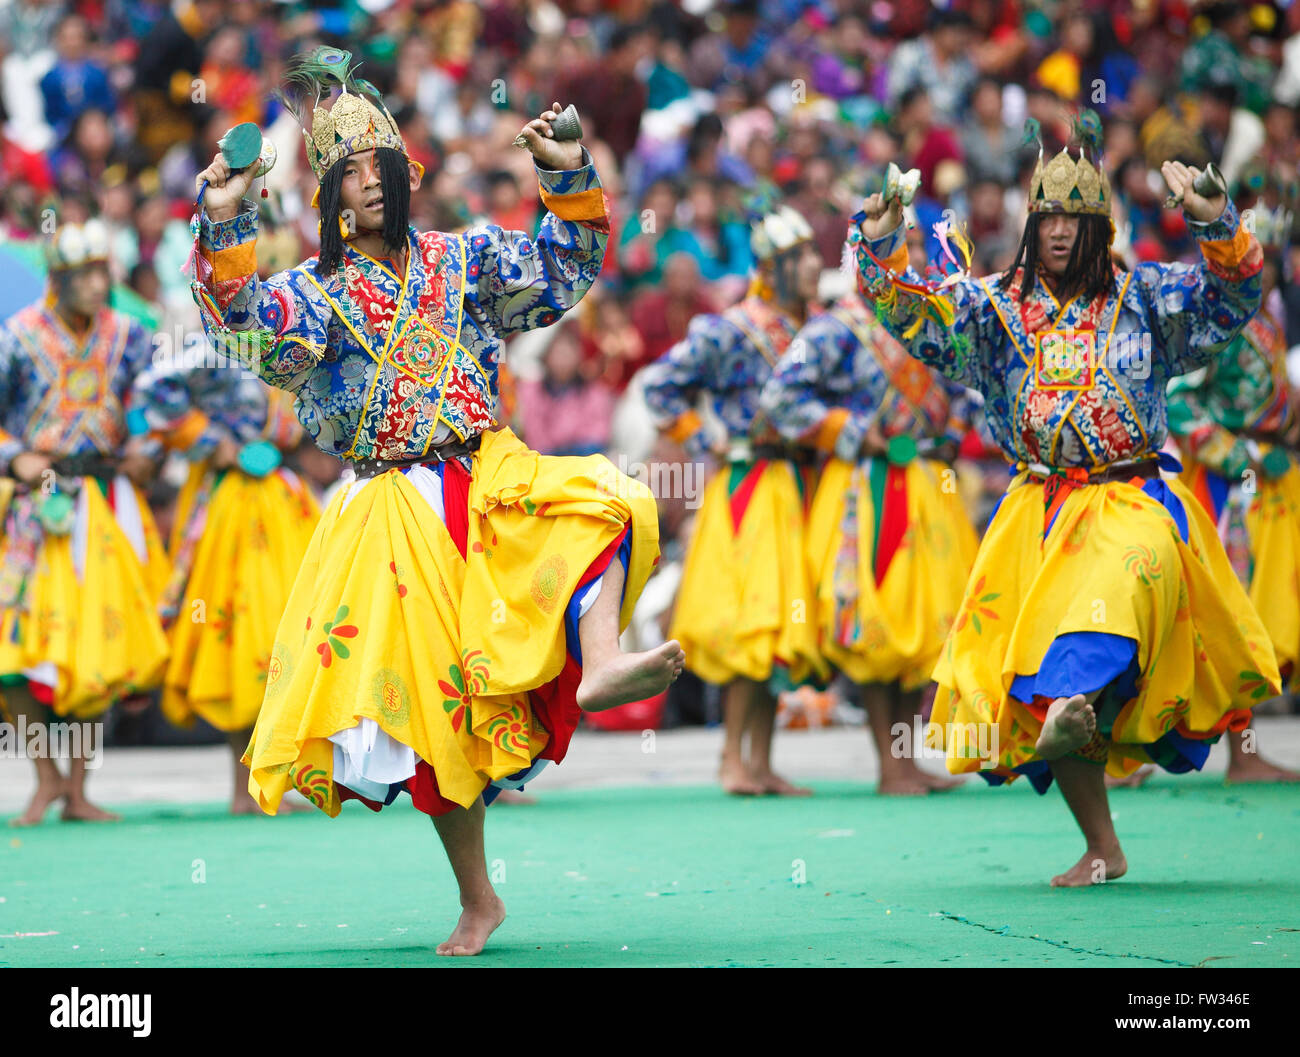 Dancers at the Tashichho Dzong monastery festival, Thimphu, Bhutan - Stock Image